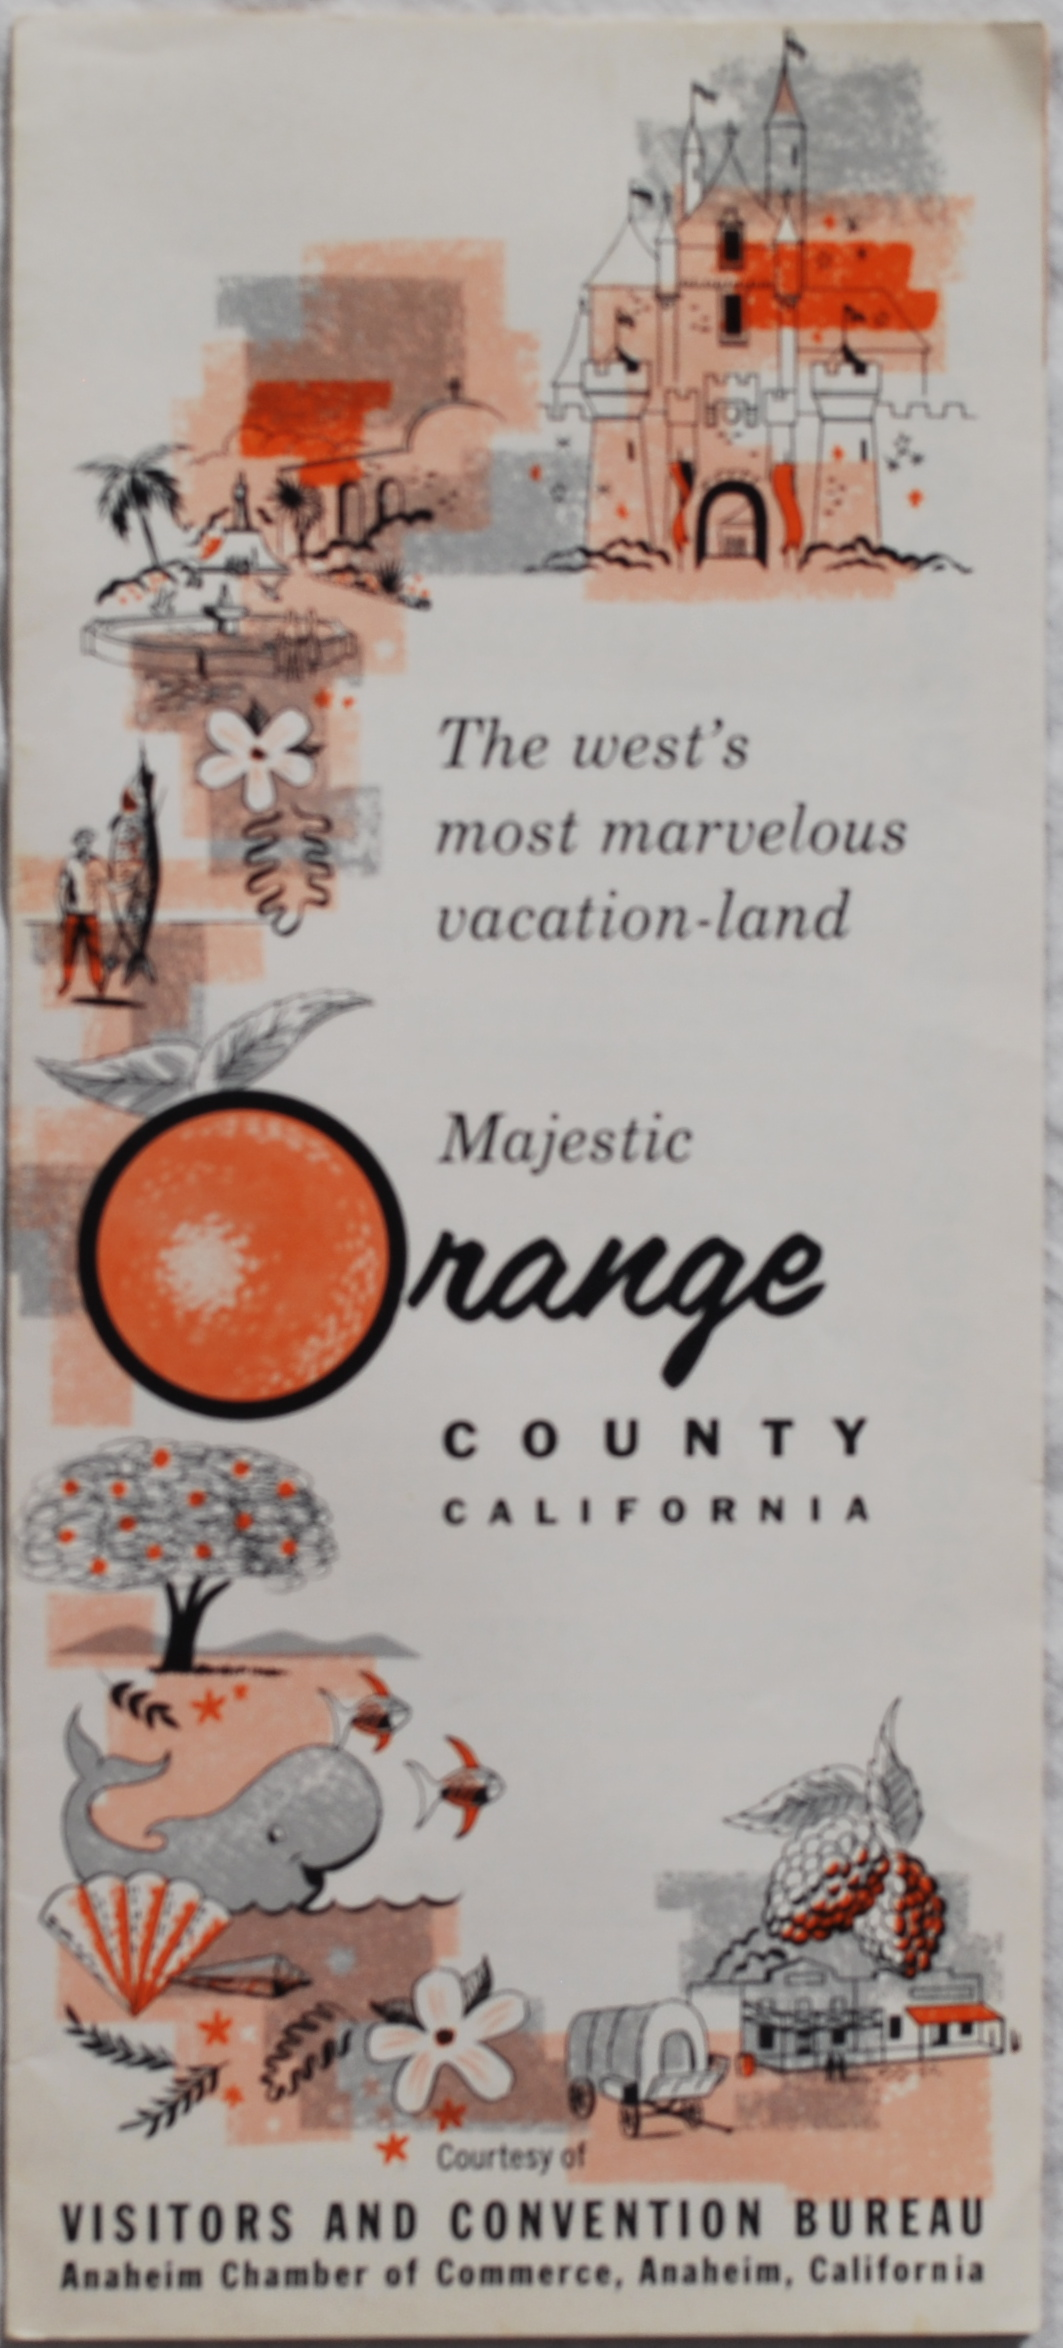 Image for The West's Most Marvelous Vacation-Land, Majestic Orange County, California.